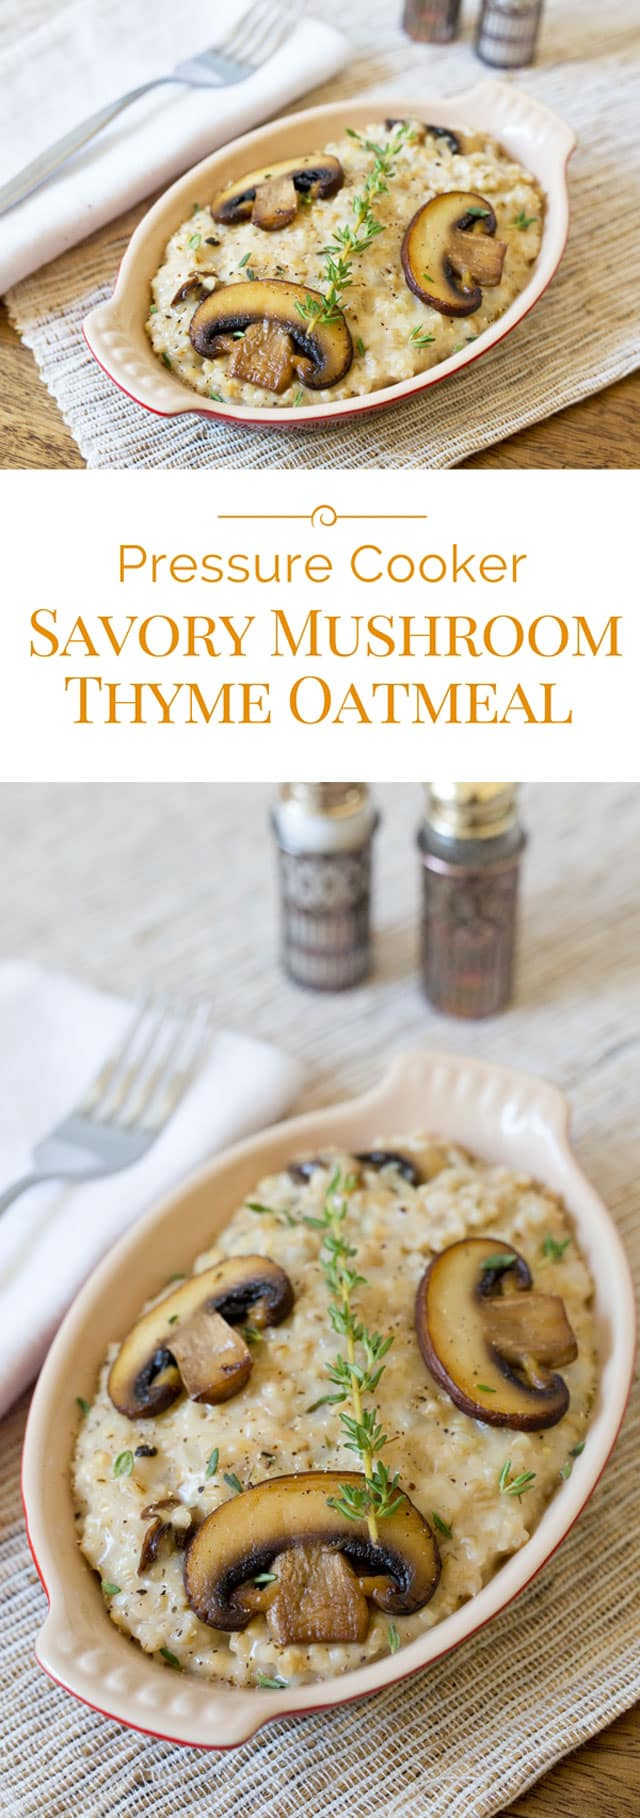 Savory-Mushroom-Thyme-Oatmeal-Collage-titled